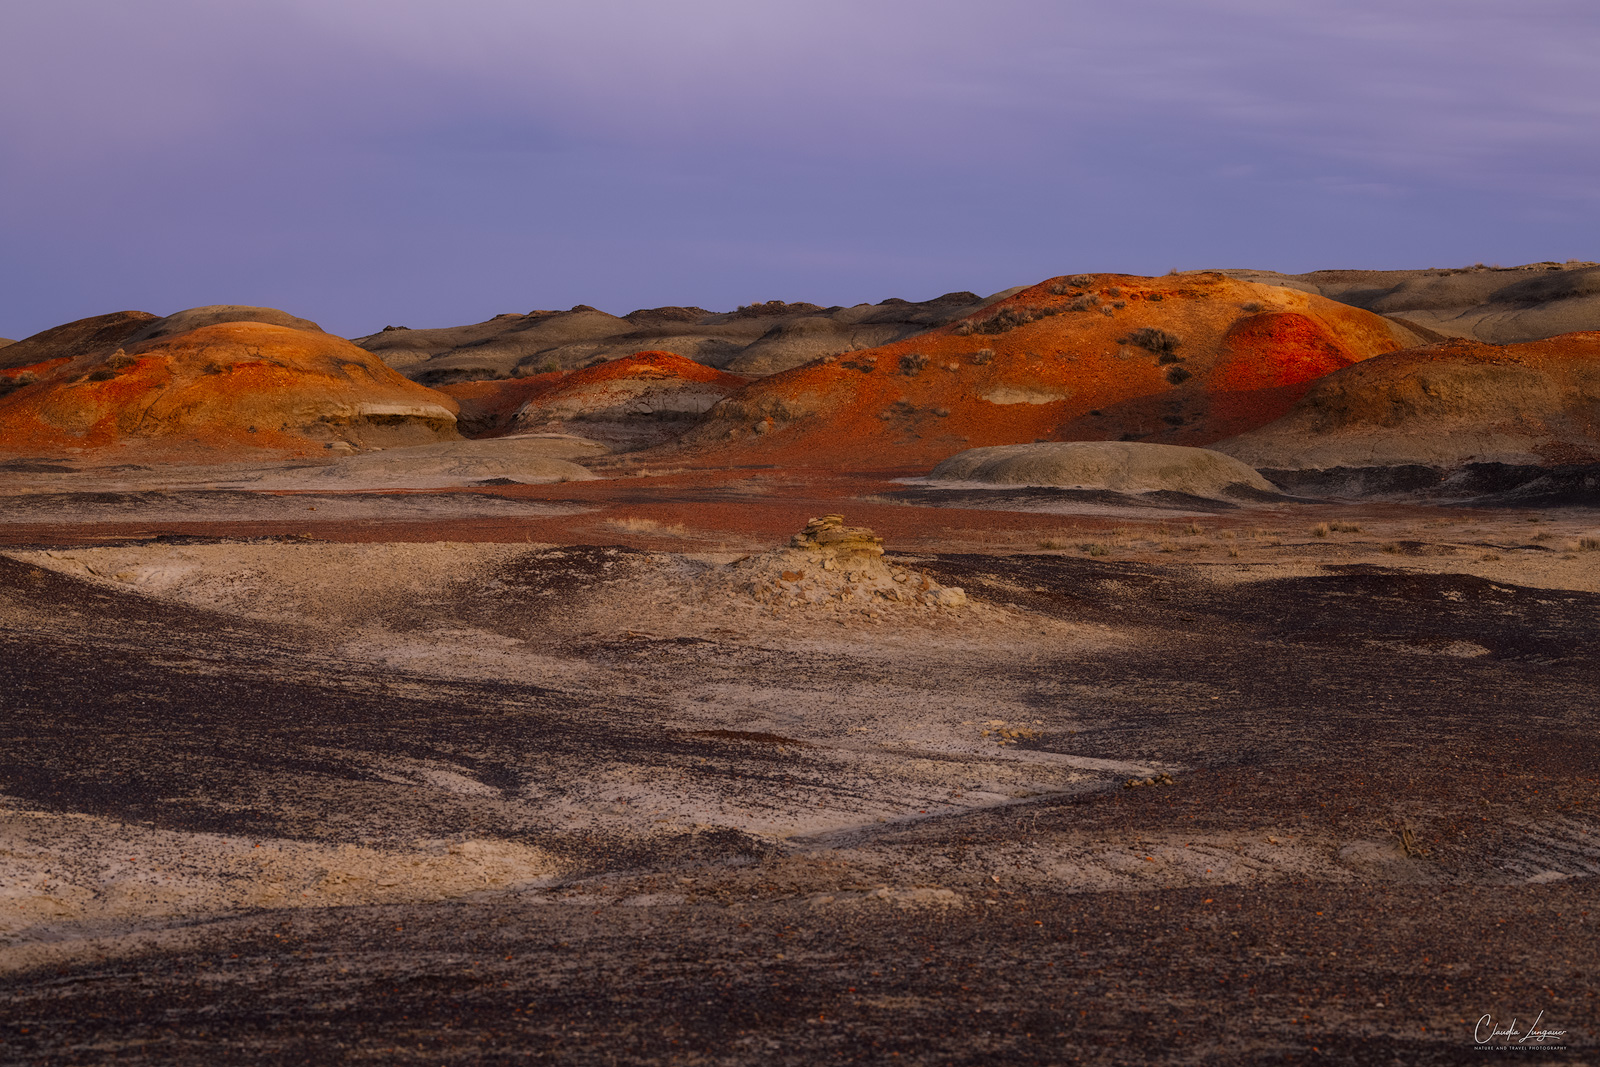 Sunset at Bisti/De-Na-Zin Wilderness in New Mexico.